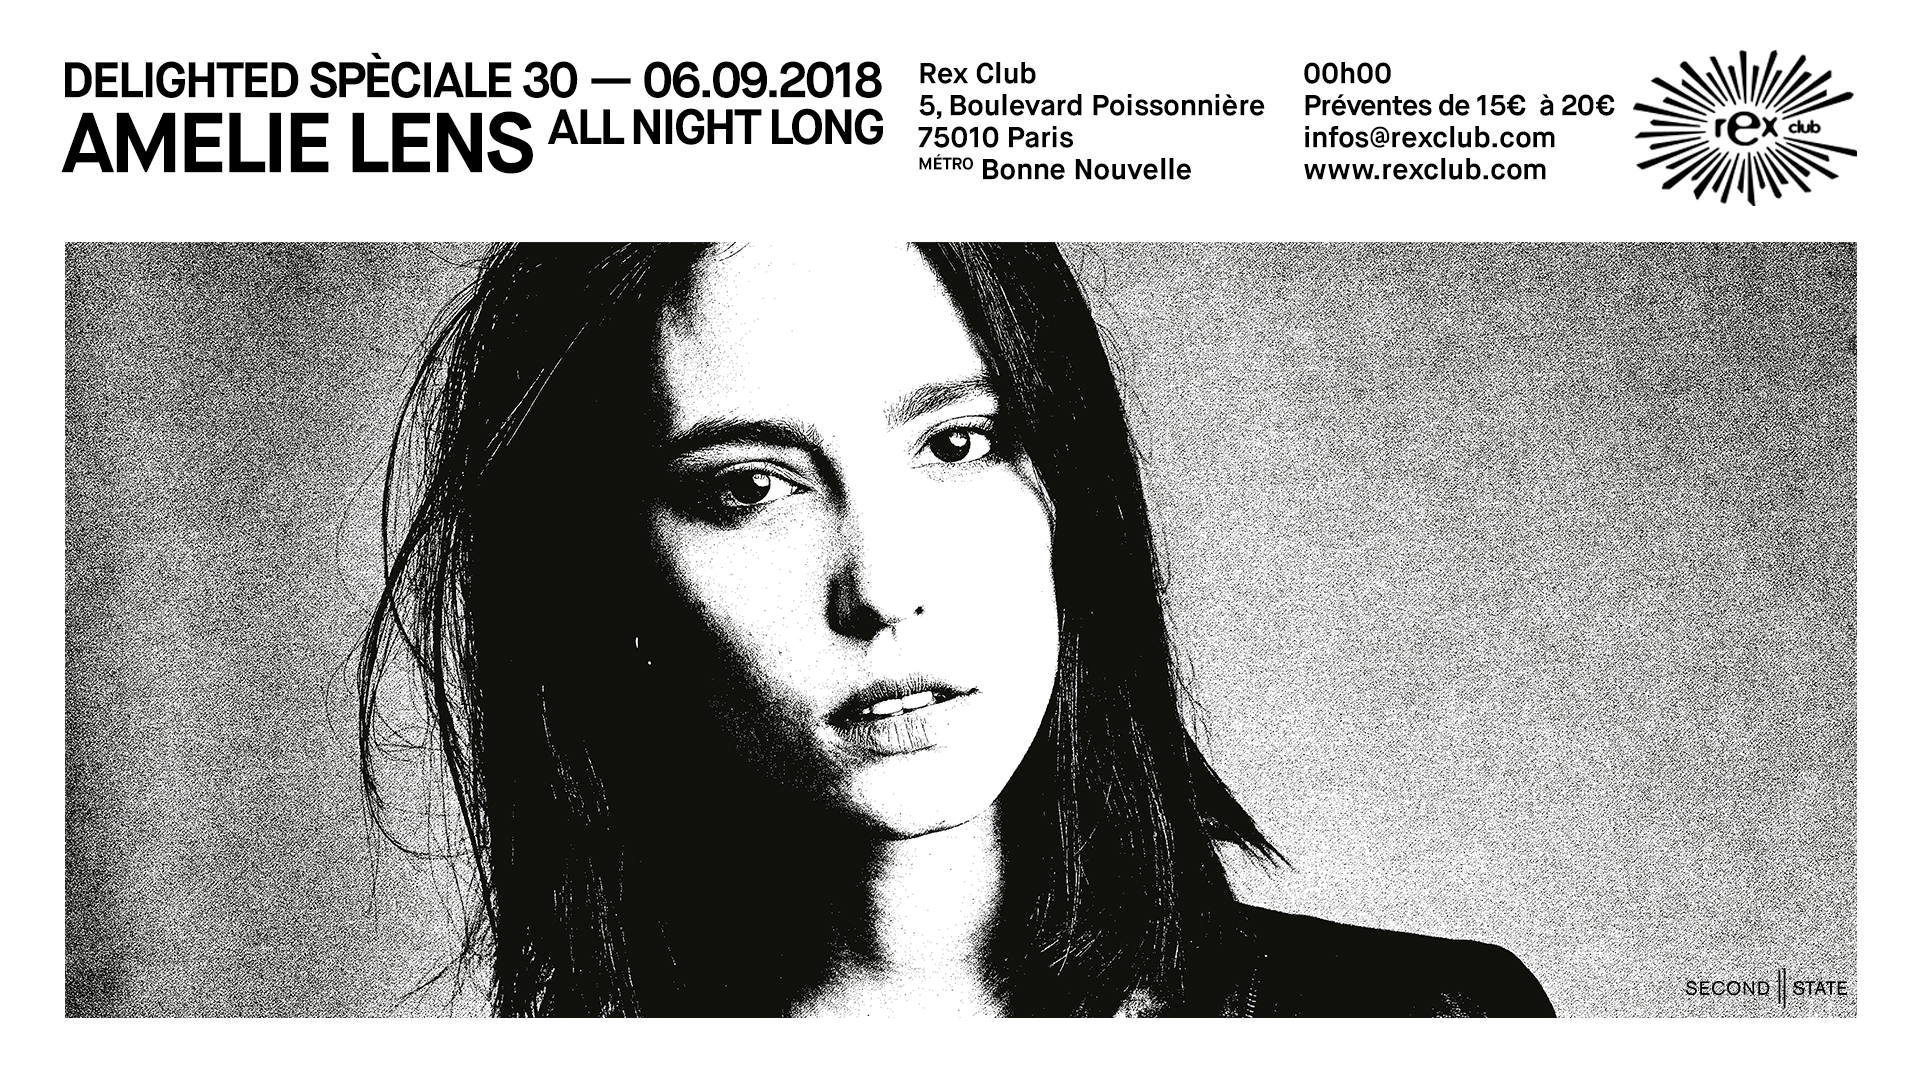 20180906_rex_club_30_delighted_amelie_lens_facebook_event_banner_1920x1080